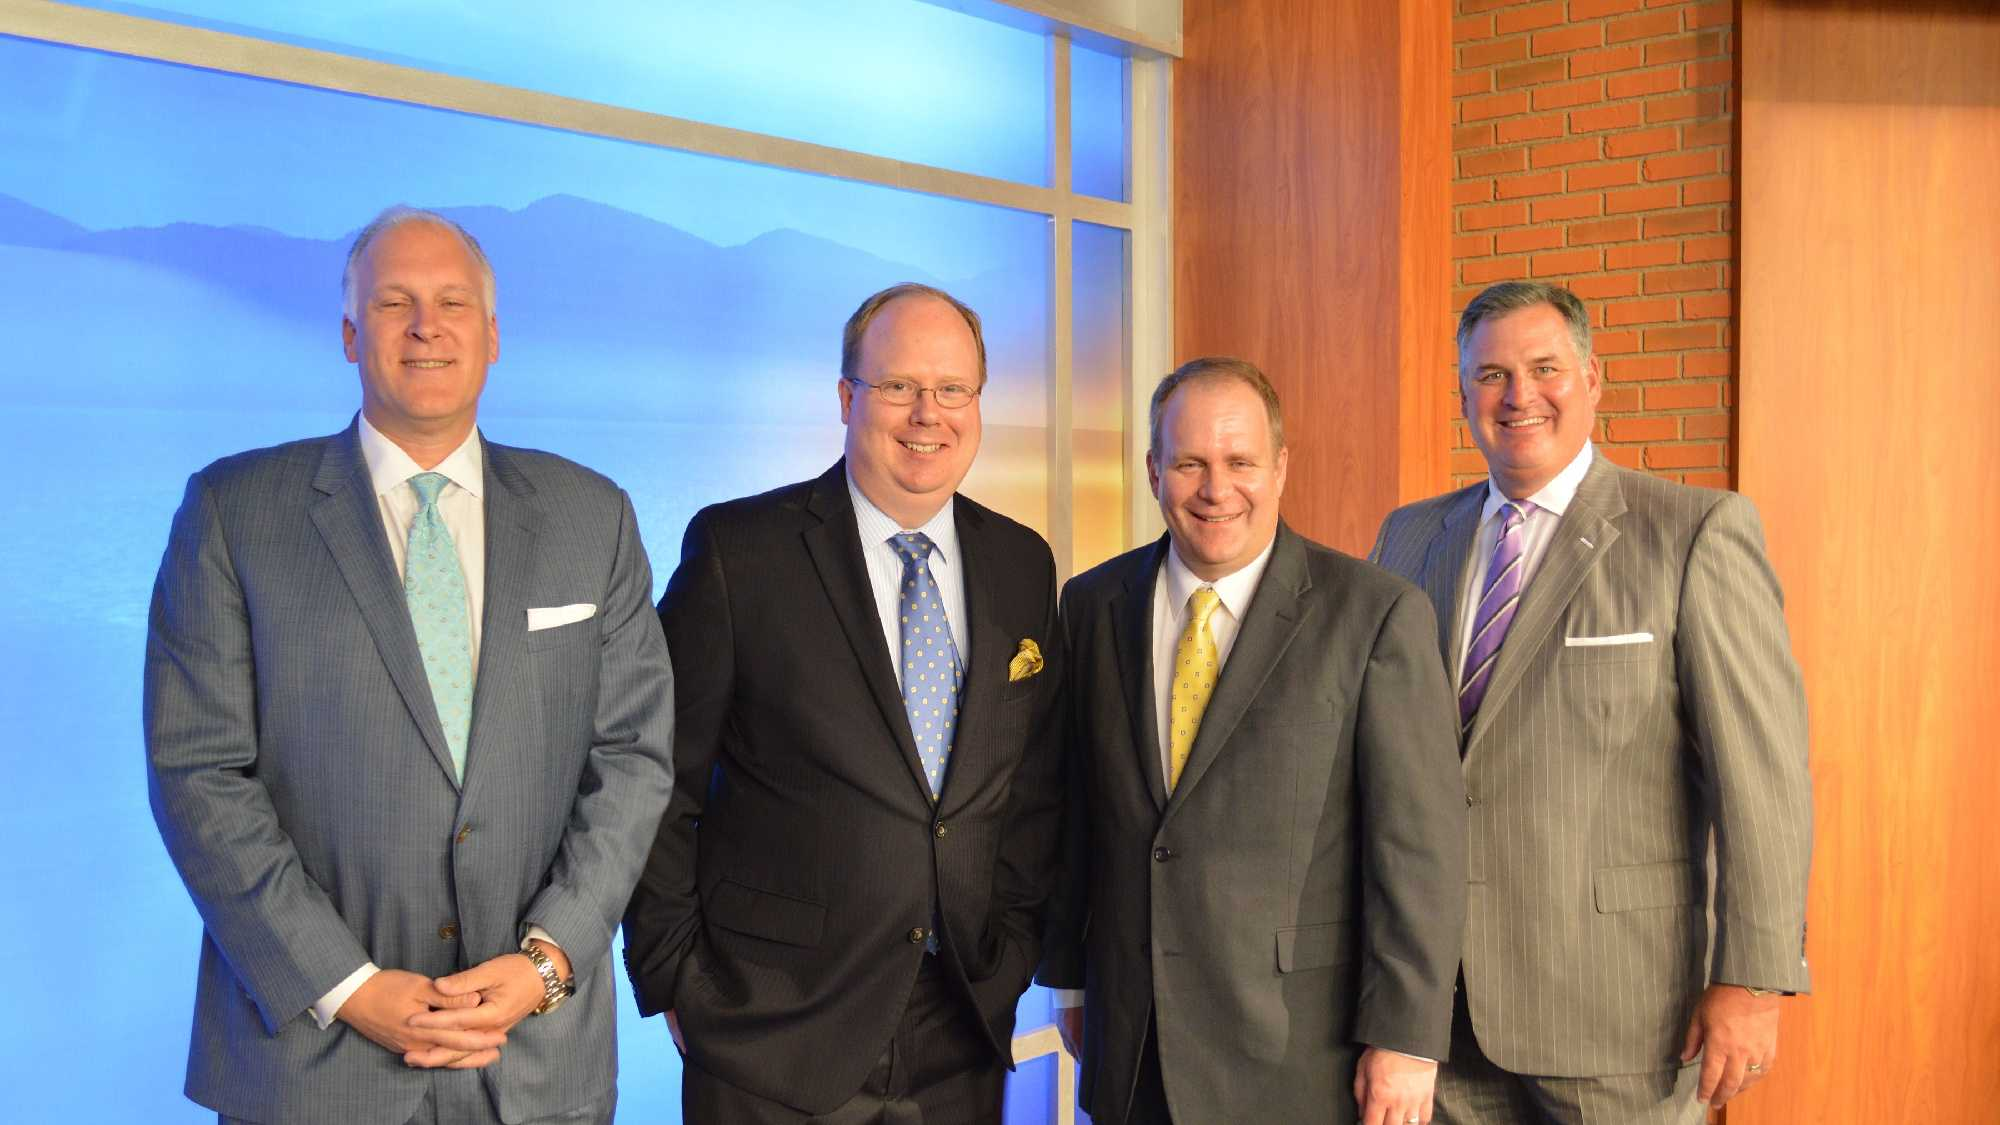 Hearst Television President JordanWertlieb, outgoing WPTZ-WNNE President Kyle Grimes, new WPTZ-WNNE PresidentJustin Antoniotti & Hearst Television Senior Vice President Mike Hayes.